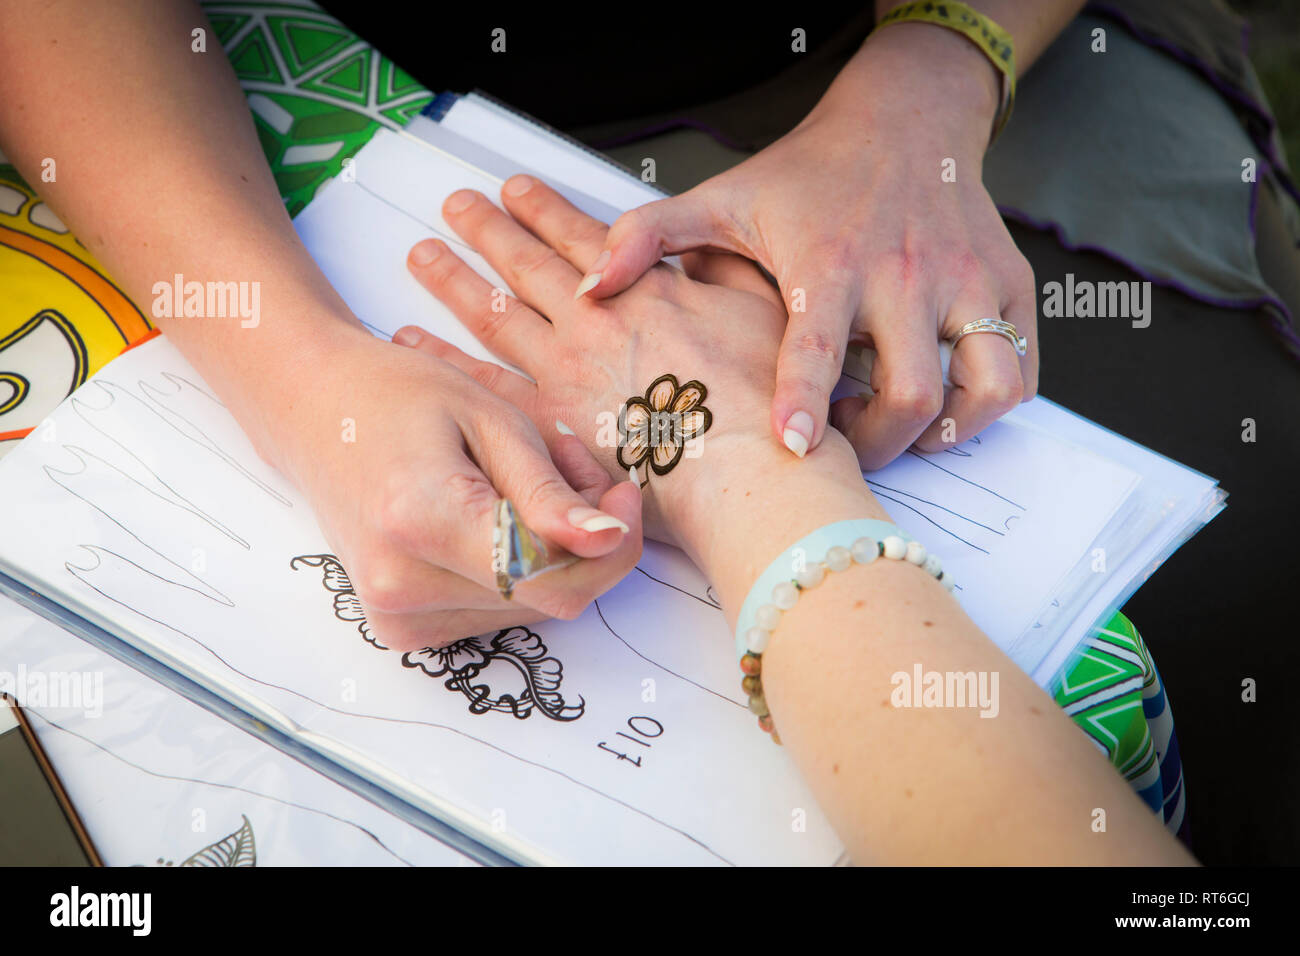 Henna tattooing at Beltane Fire Festival, Sussex, UK - Stock Image